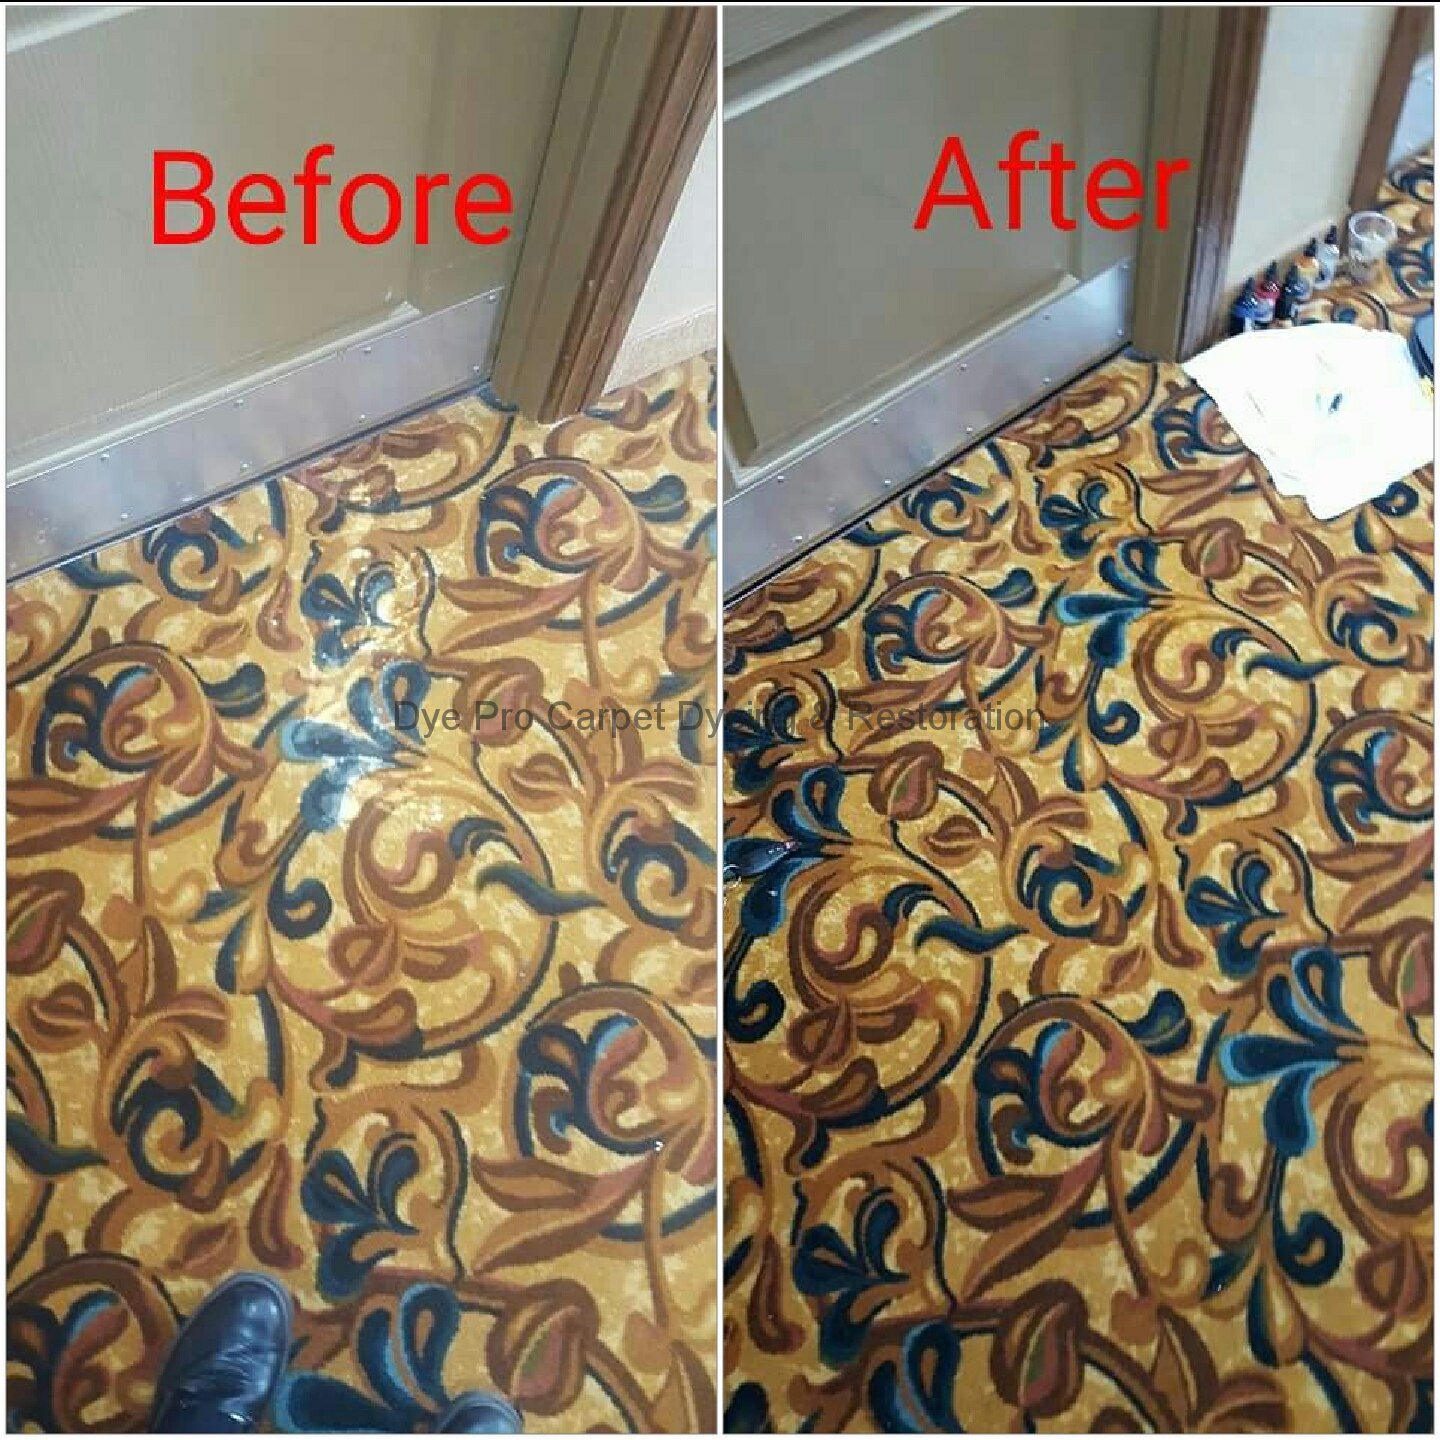 Bleach Spot Removal in Norfolk, VA Hotel